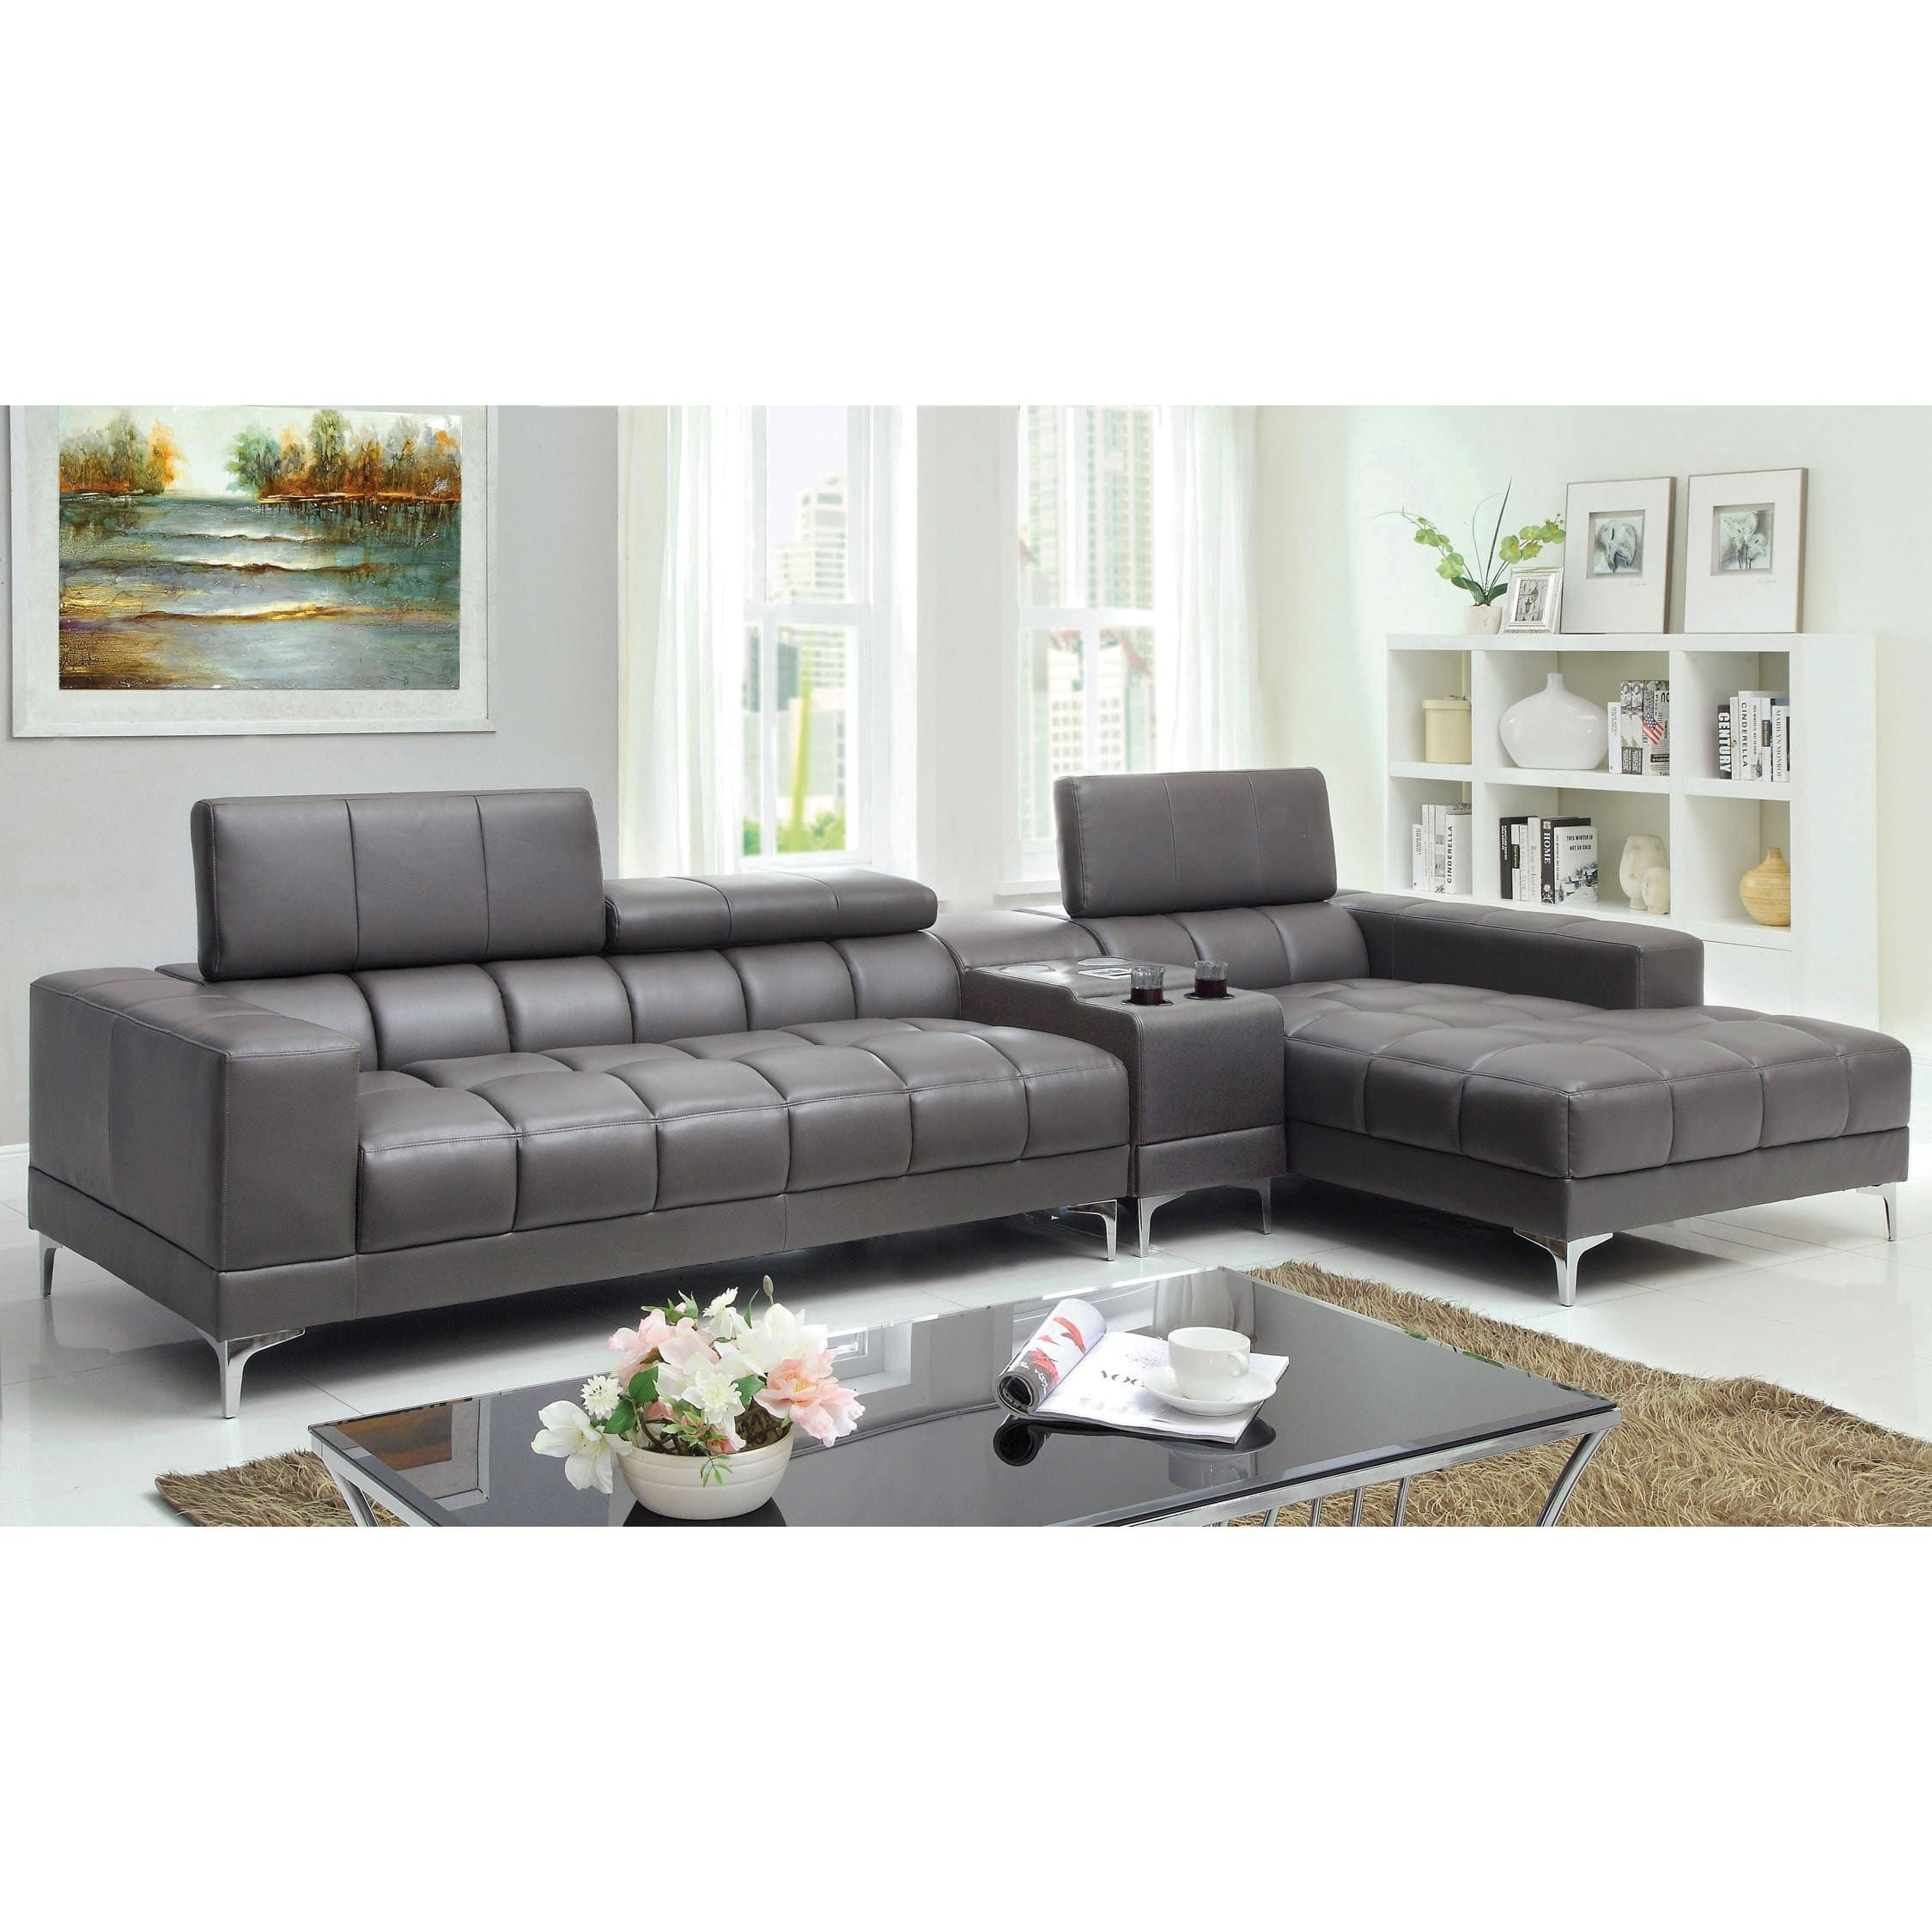 Magnificent Furniture Of America Bourlette Grey Bonded Leather 2 Piece Bralicious Painted Fabric Chair Ideas Braliciousco